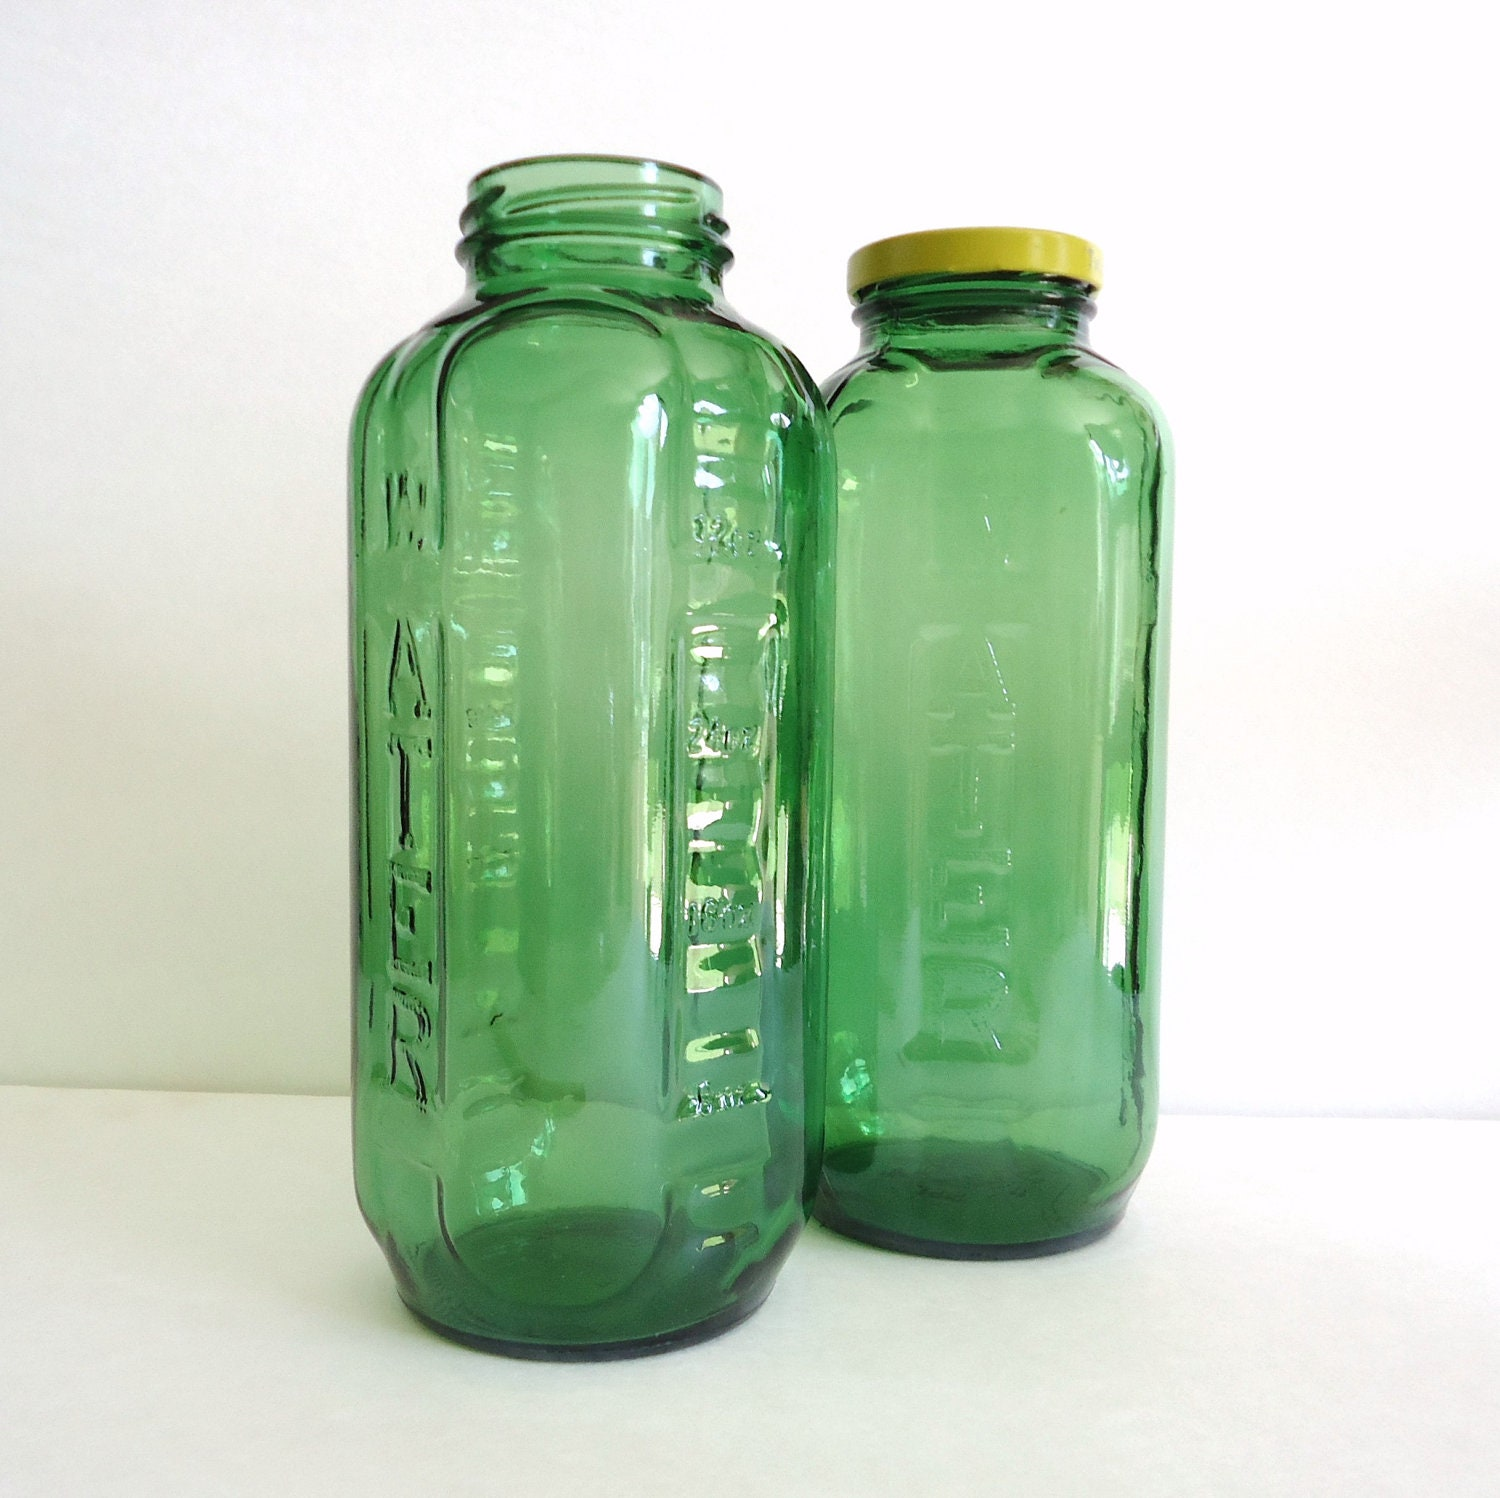 old glass bottle green glass water bottle retro. Black Bedroom Furniture Sets. Home Design Ideas